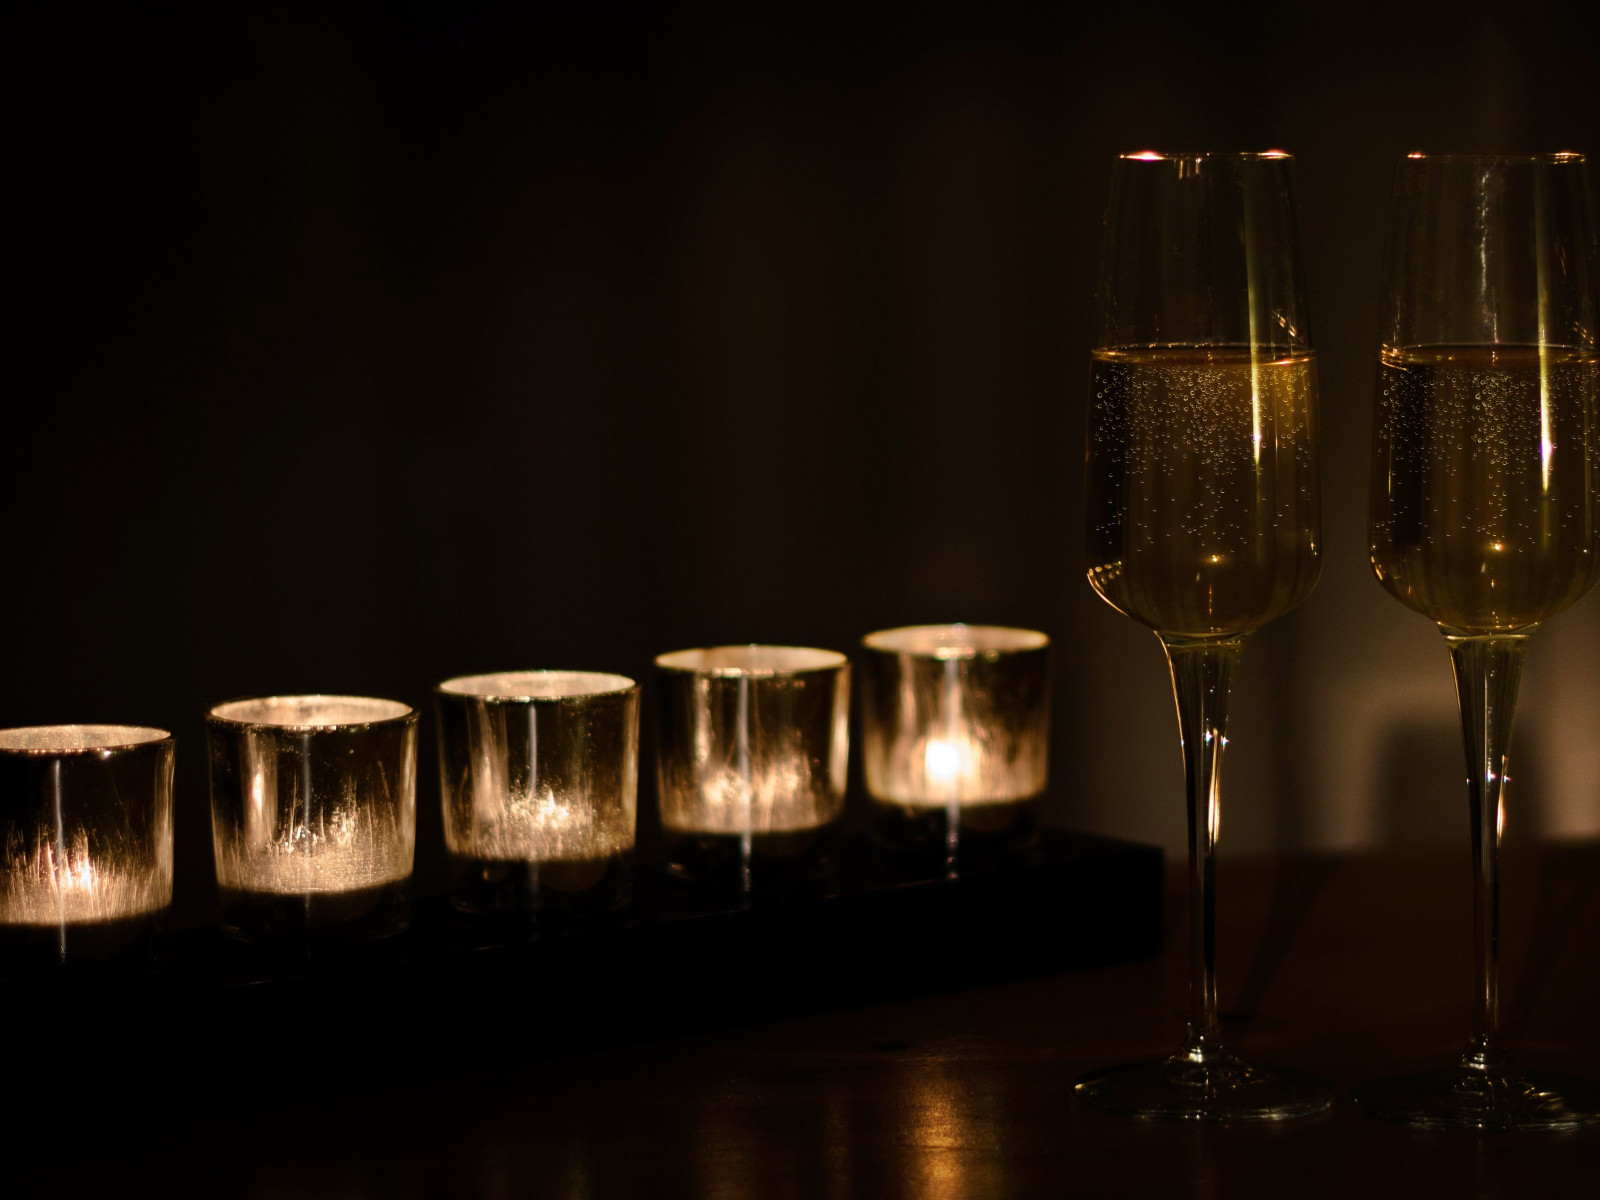 Champagne and candles | 1600x1200 wallpaper